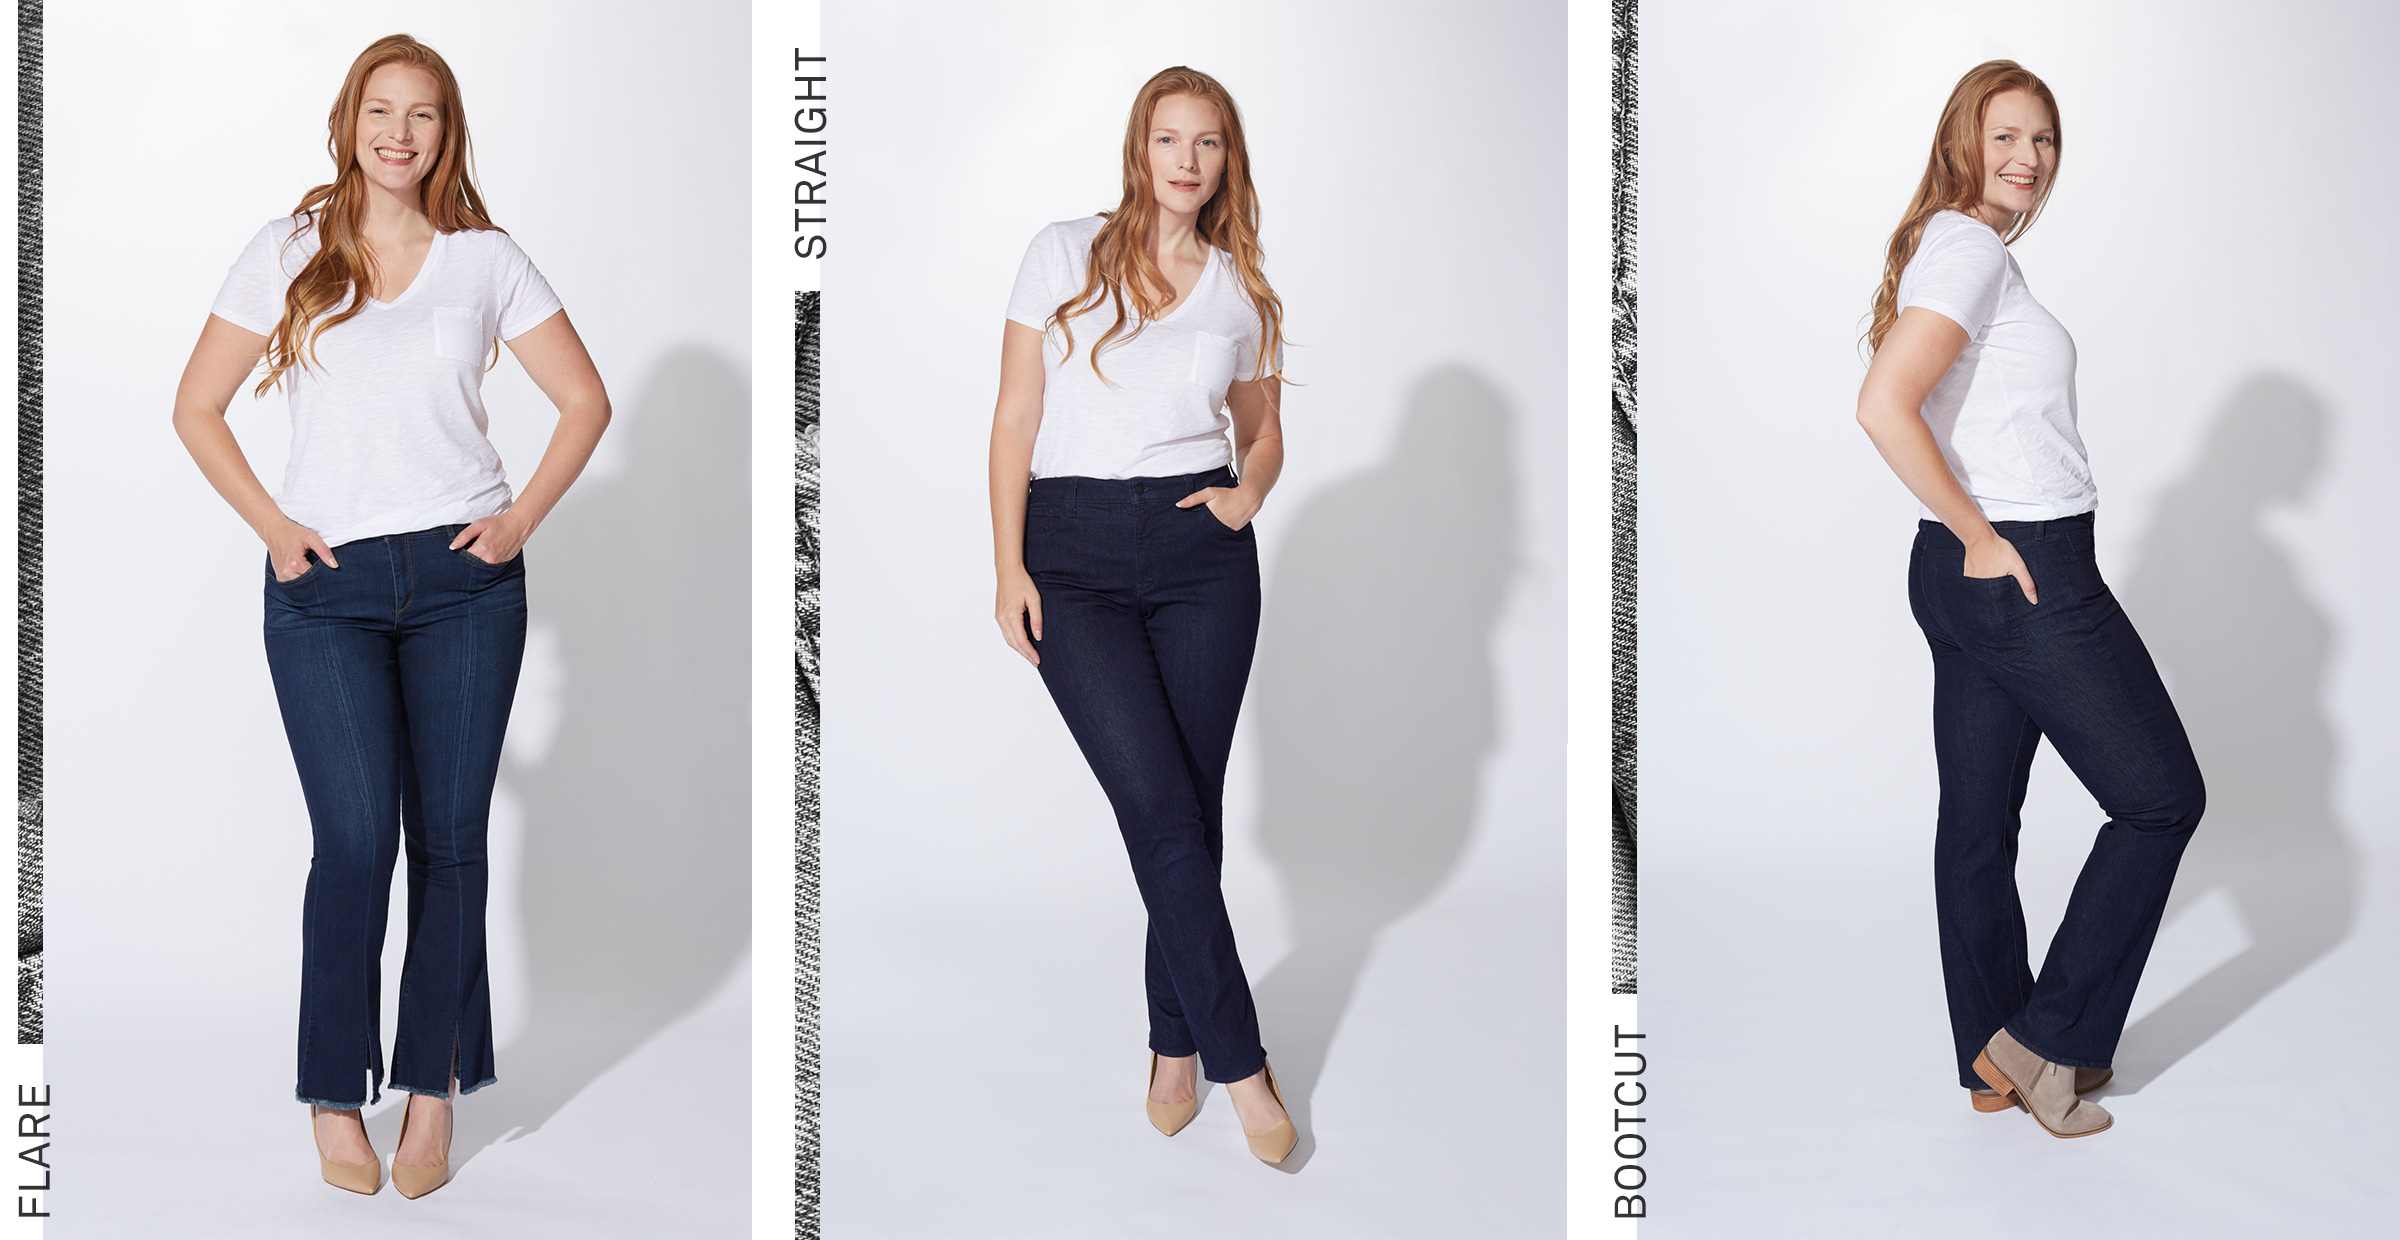 16fb2862dc9186 Super-slim denim has the potential to only exaggerate a triangular shape.  Instead, try silhouettes that create some breathing room on bottom, like  straight, ...